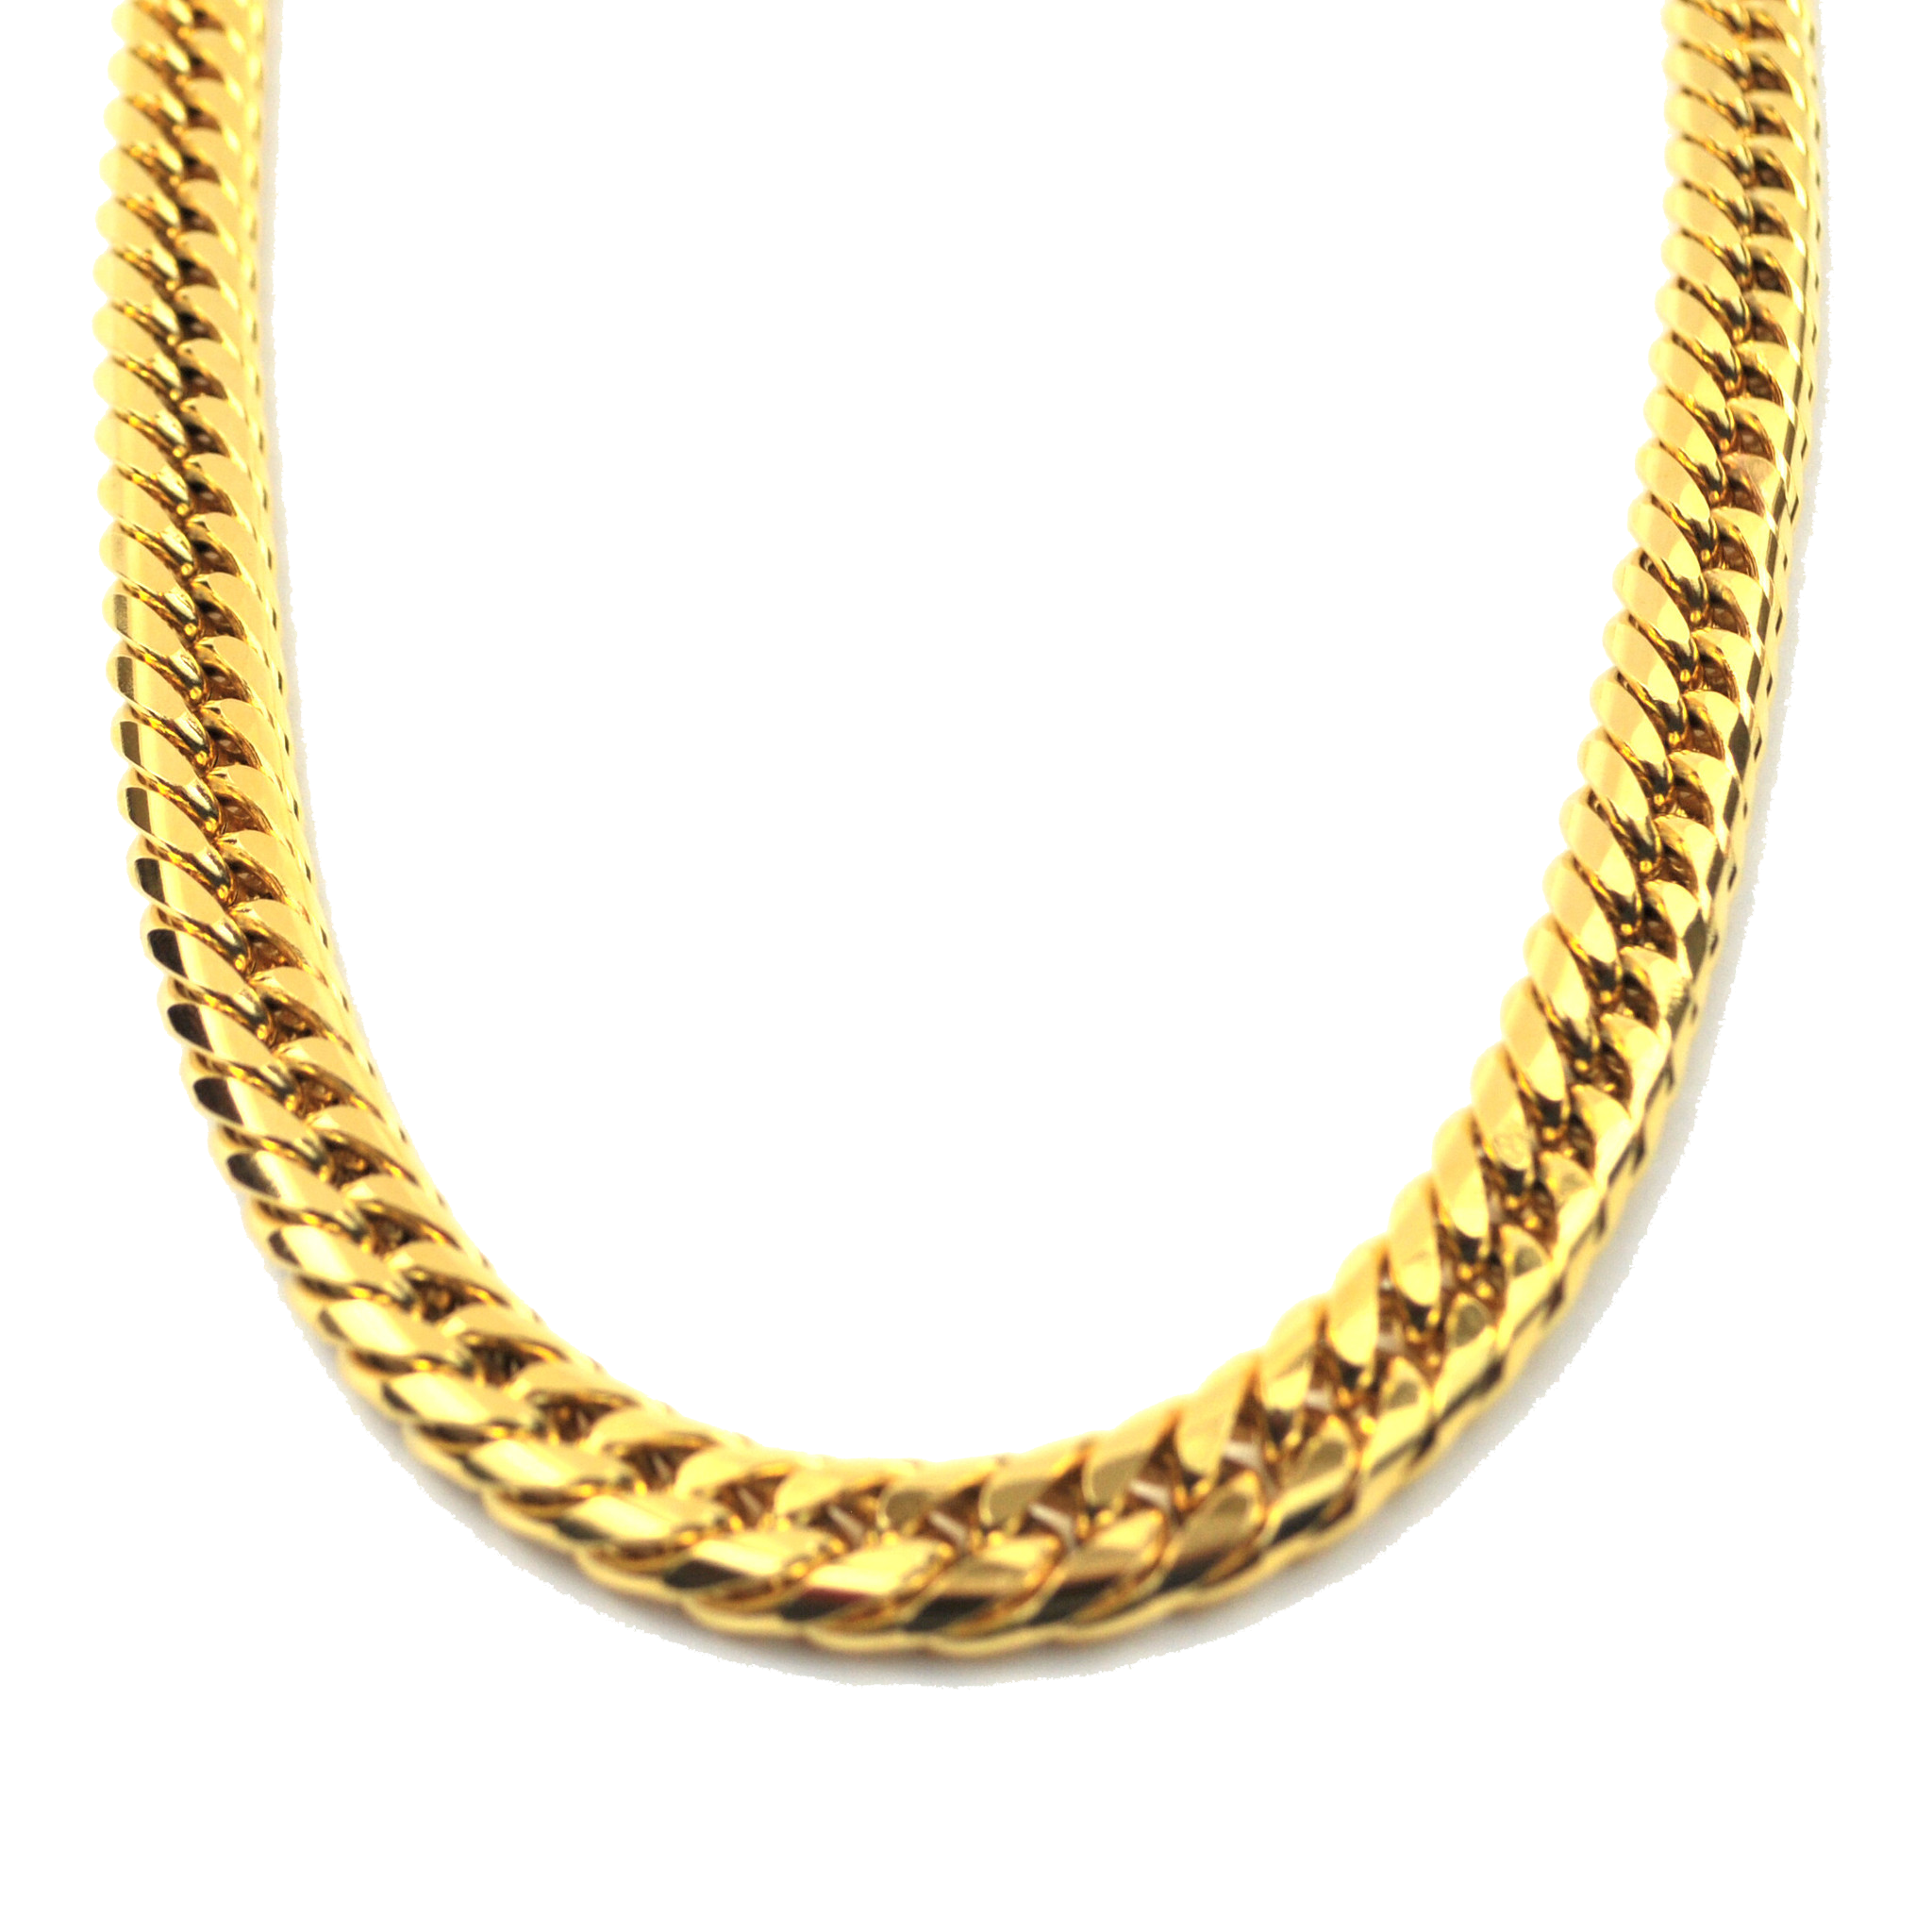 Jewellery Chain PNG Clipart #42697.